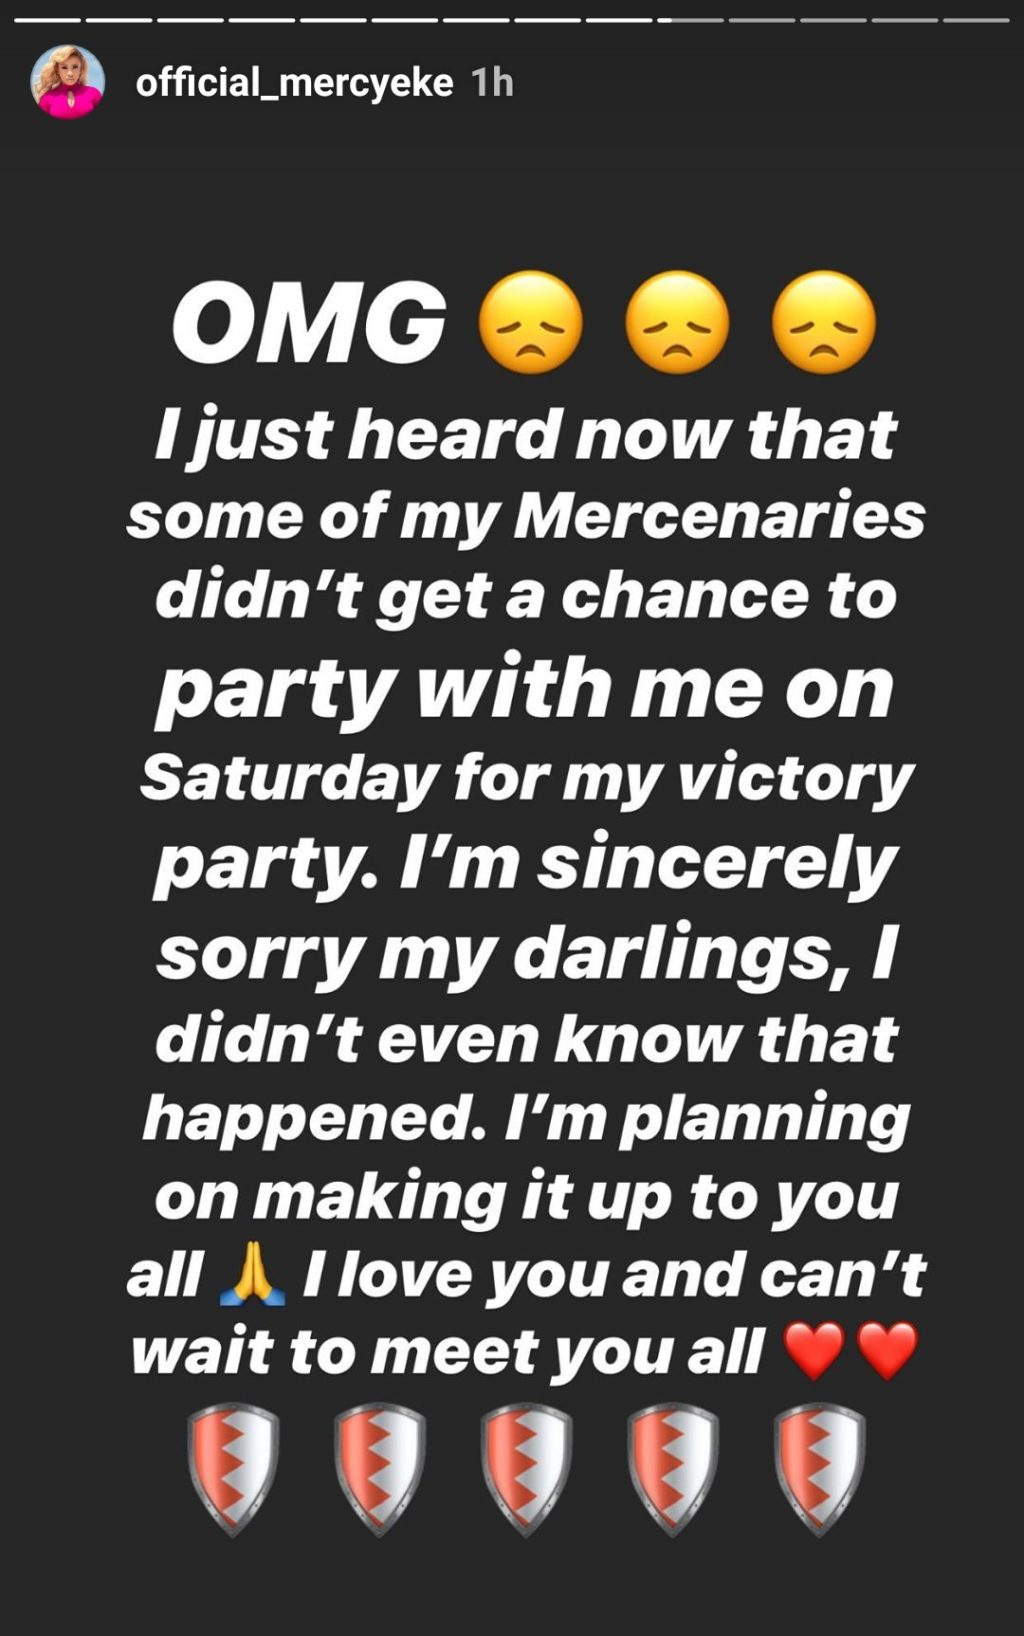 Mercy sends official apology letter to fans who were locked out during her party, Mercy sends official apology letter to fans who were locked out during her party, Latest Nigeria News, Daily Devotionals & Celebrity Gossips - Chidispalace